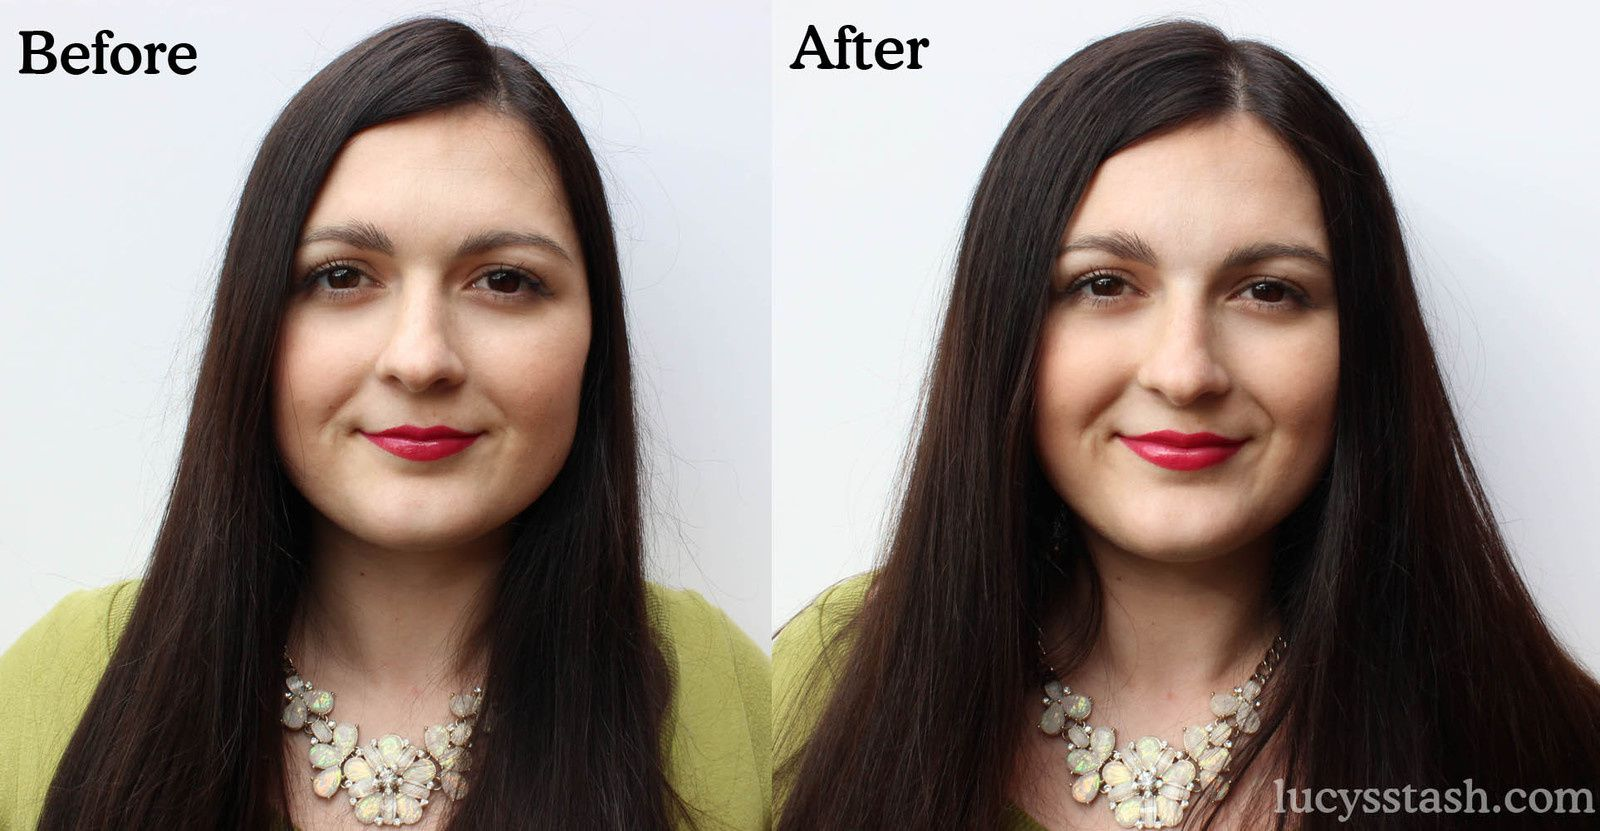 My Review &amp&#x3B; Experience with VOLOOM - Hair Volumizing Iron + Before &amp&#x3B; After Pictures